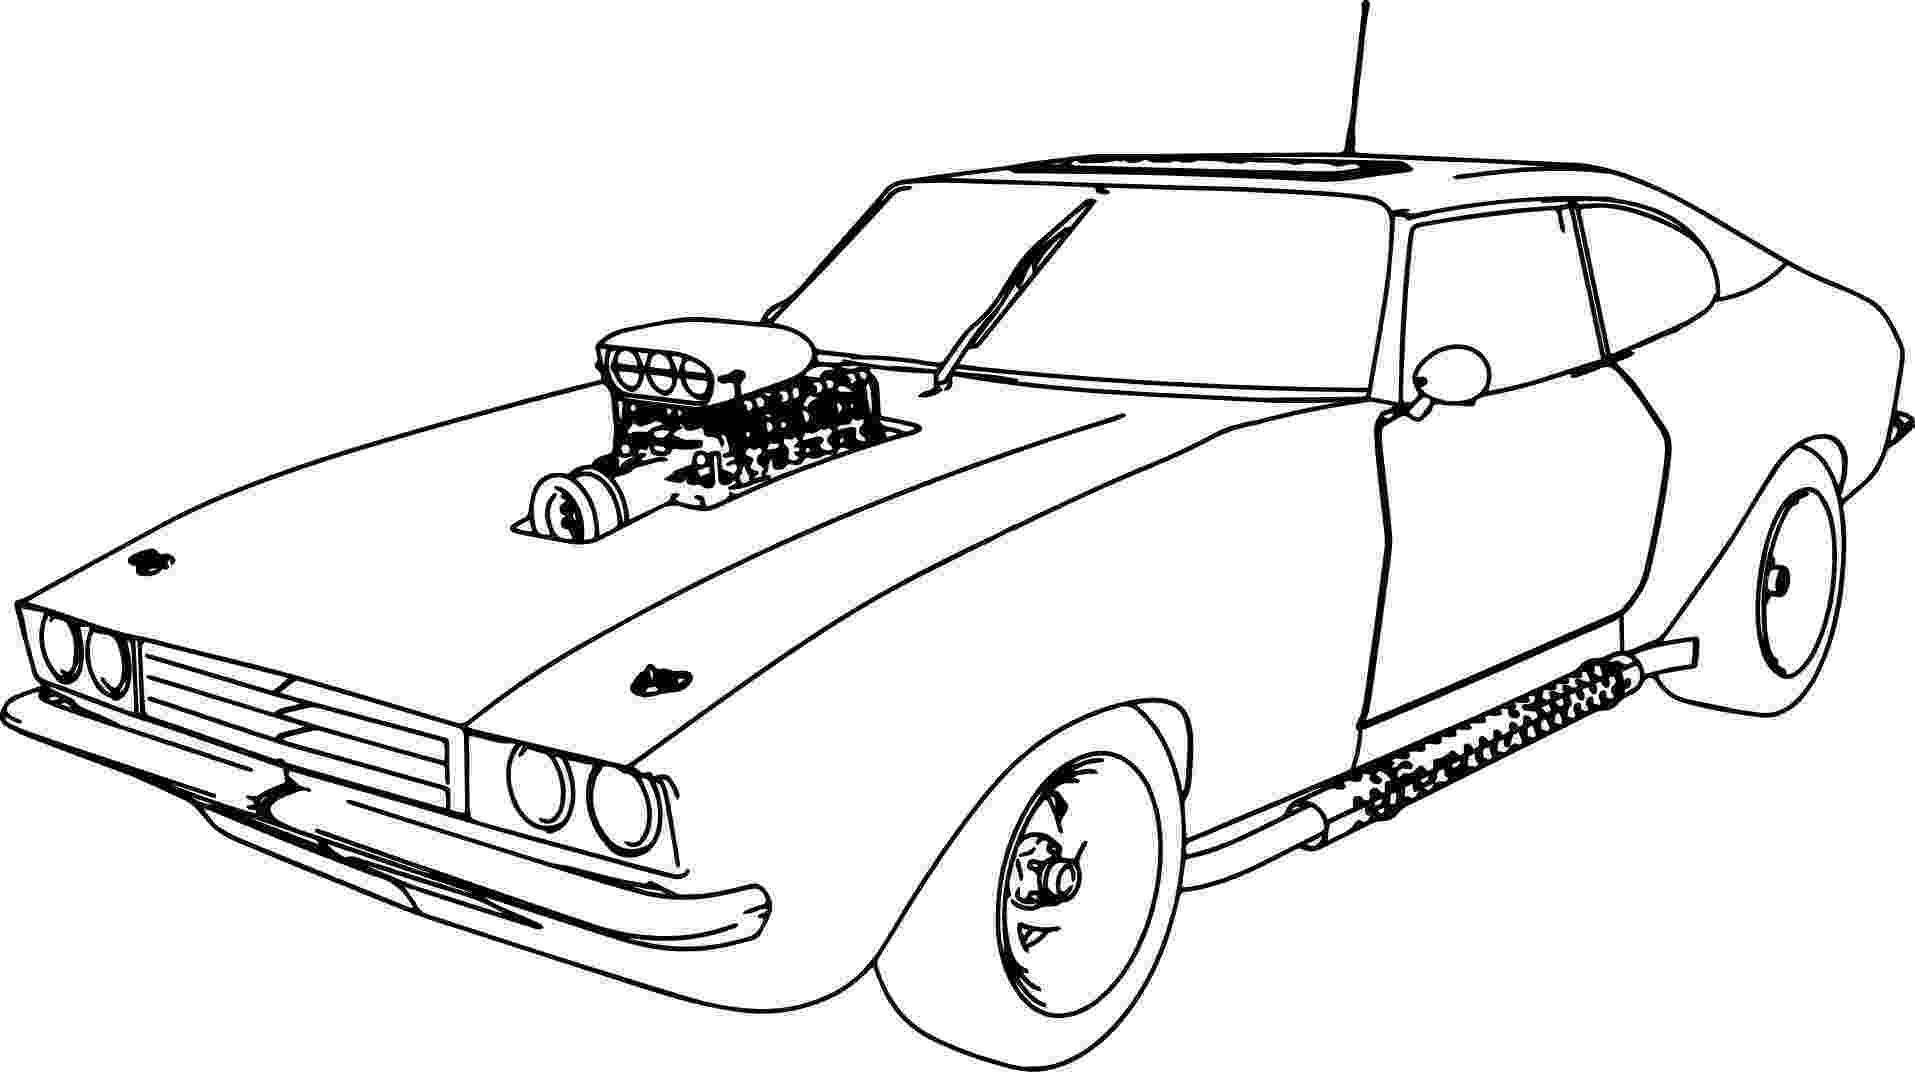 muscle cars coloring pages muscle car coloring pages to download and print for free coloring cars pages muscle 1 1